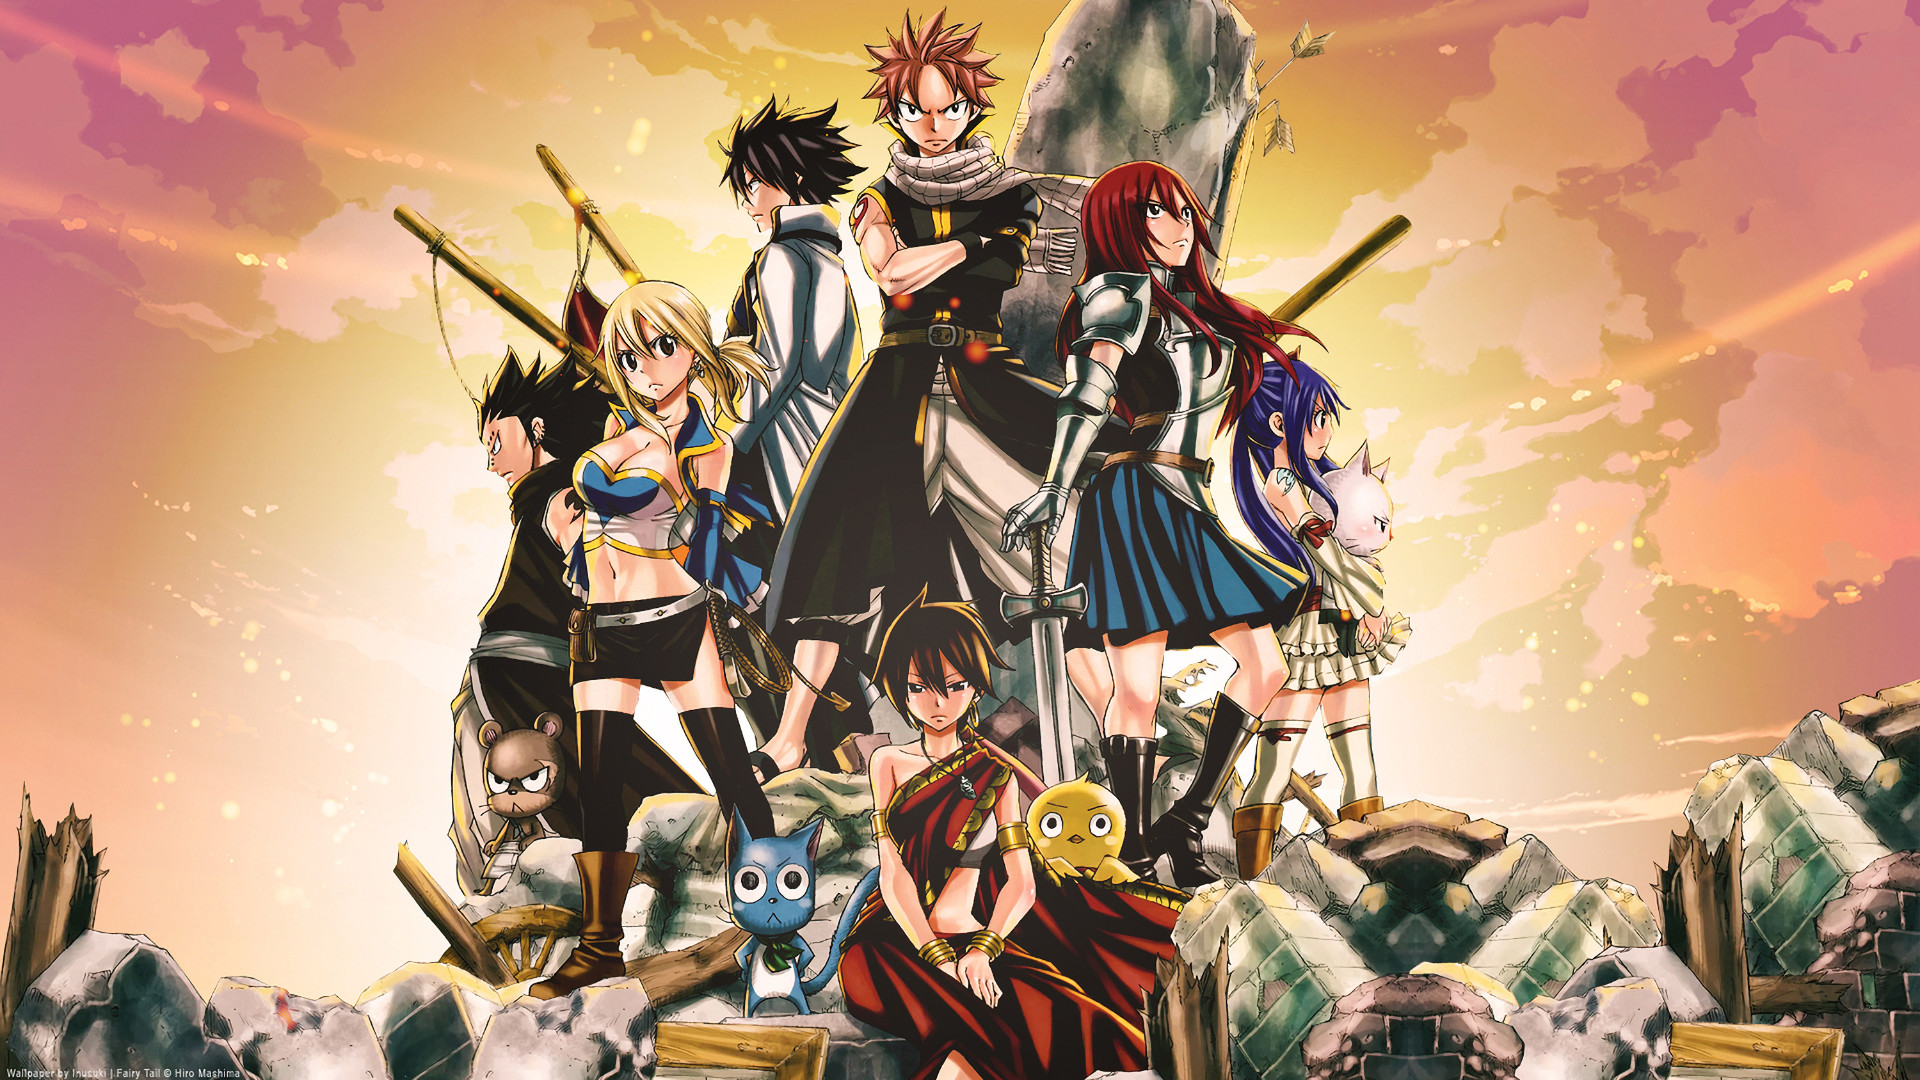 Fairy Tail Wallpapers ·â' WallpaperTag